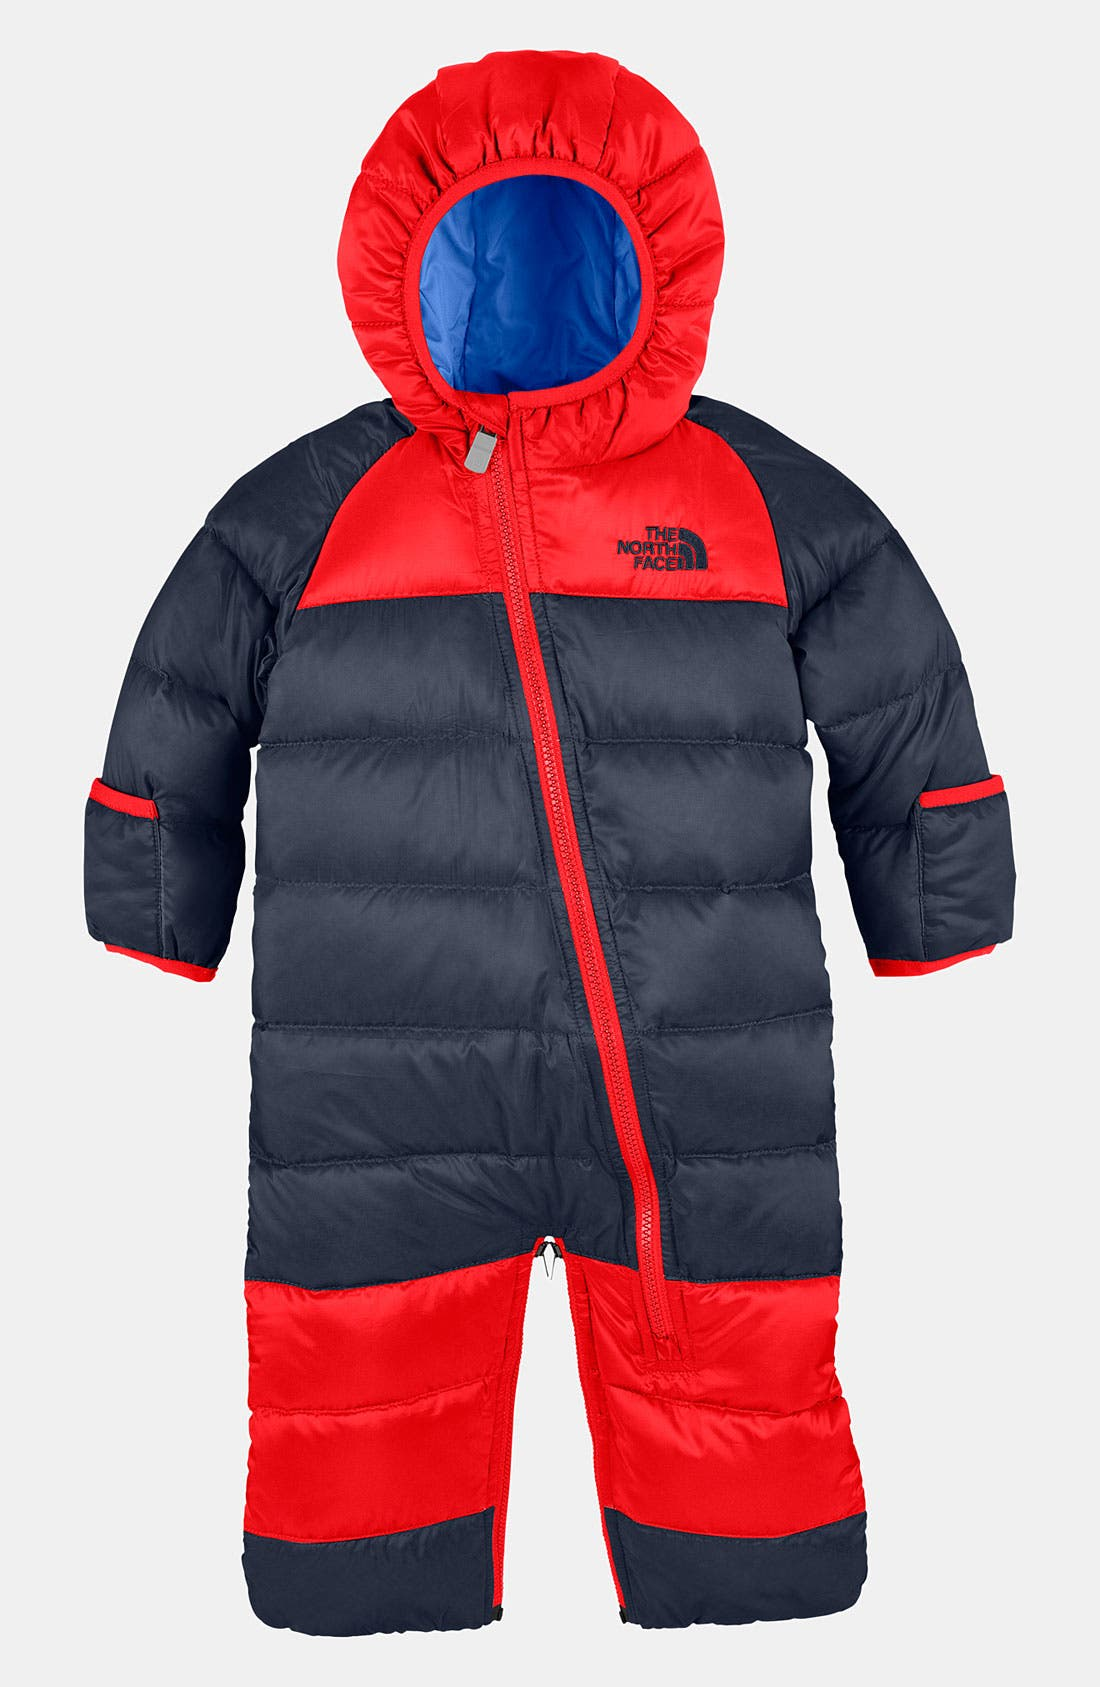 Alternate Image 1 Selected - The North Face 'Lil' Snug' Down Bunting (Infant)